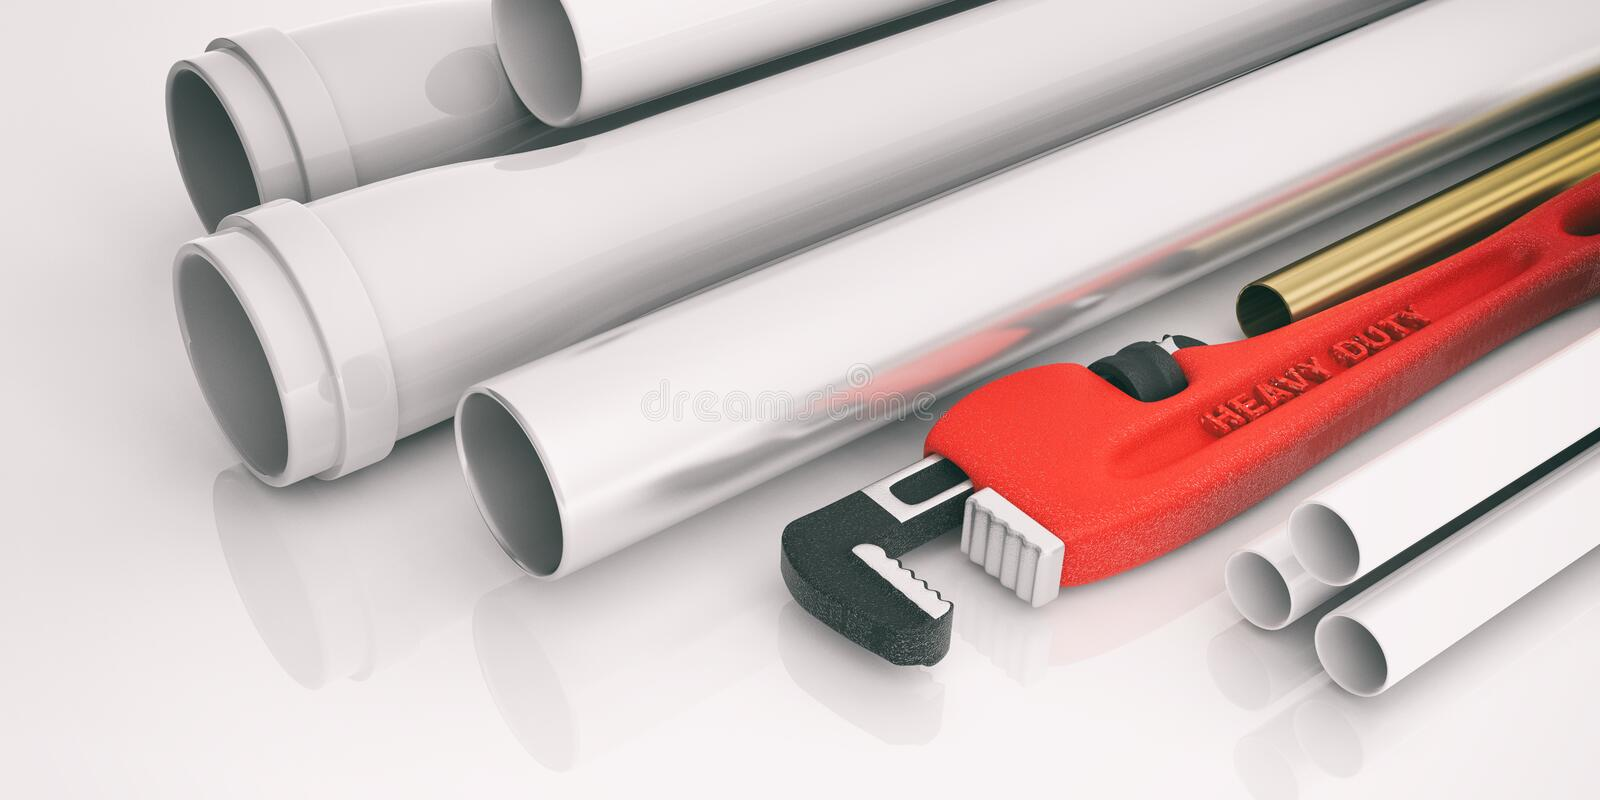 Monkey wrench and pipes on white background. 3d illustration stock illustration